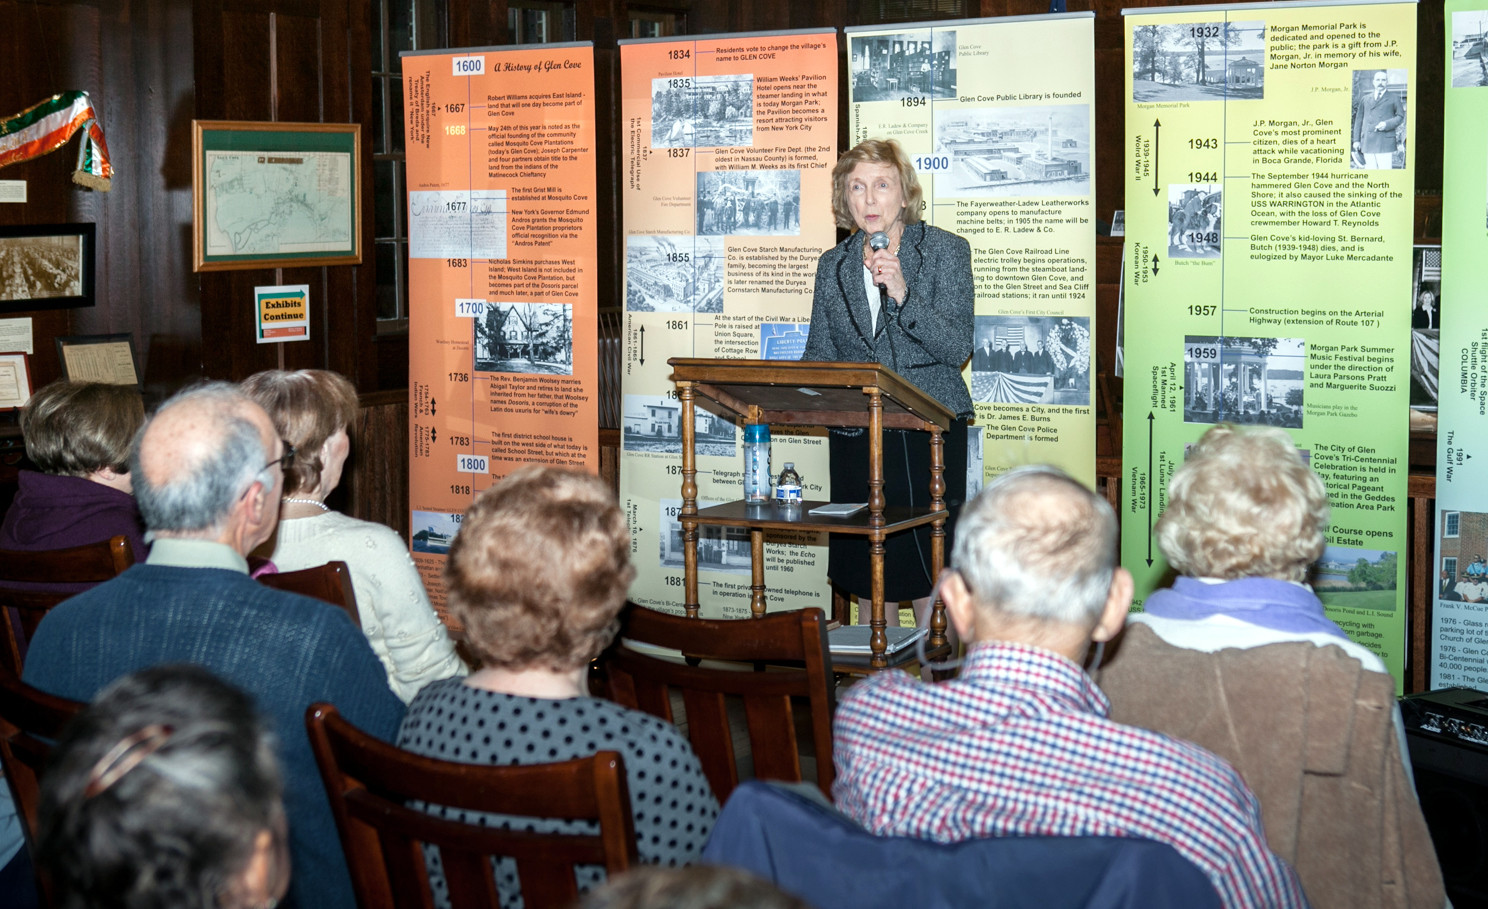 Dr. Millie DeRiggi talked about how her curiosity about her childhood home led her to learn about the North Shore settlers who resided there before her.